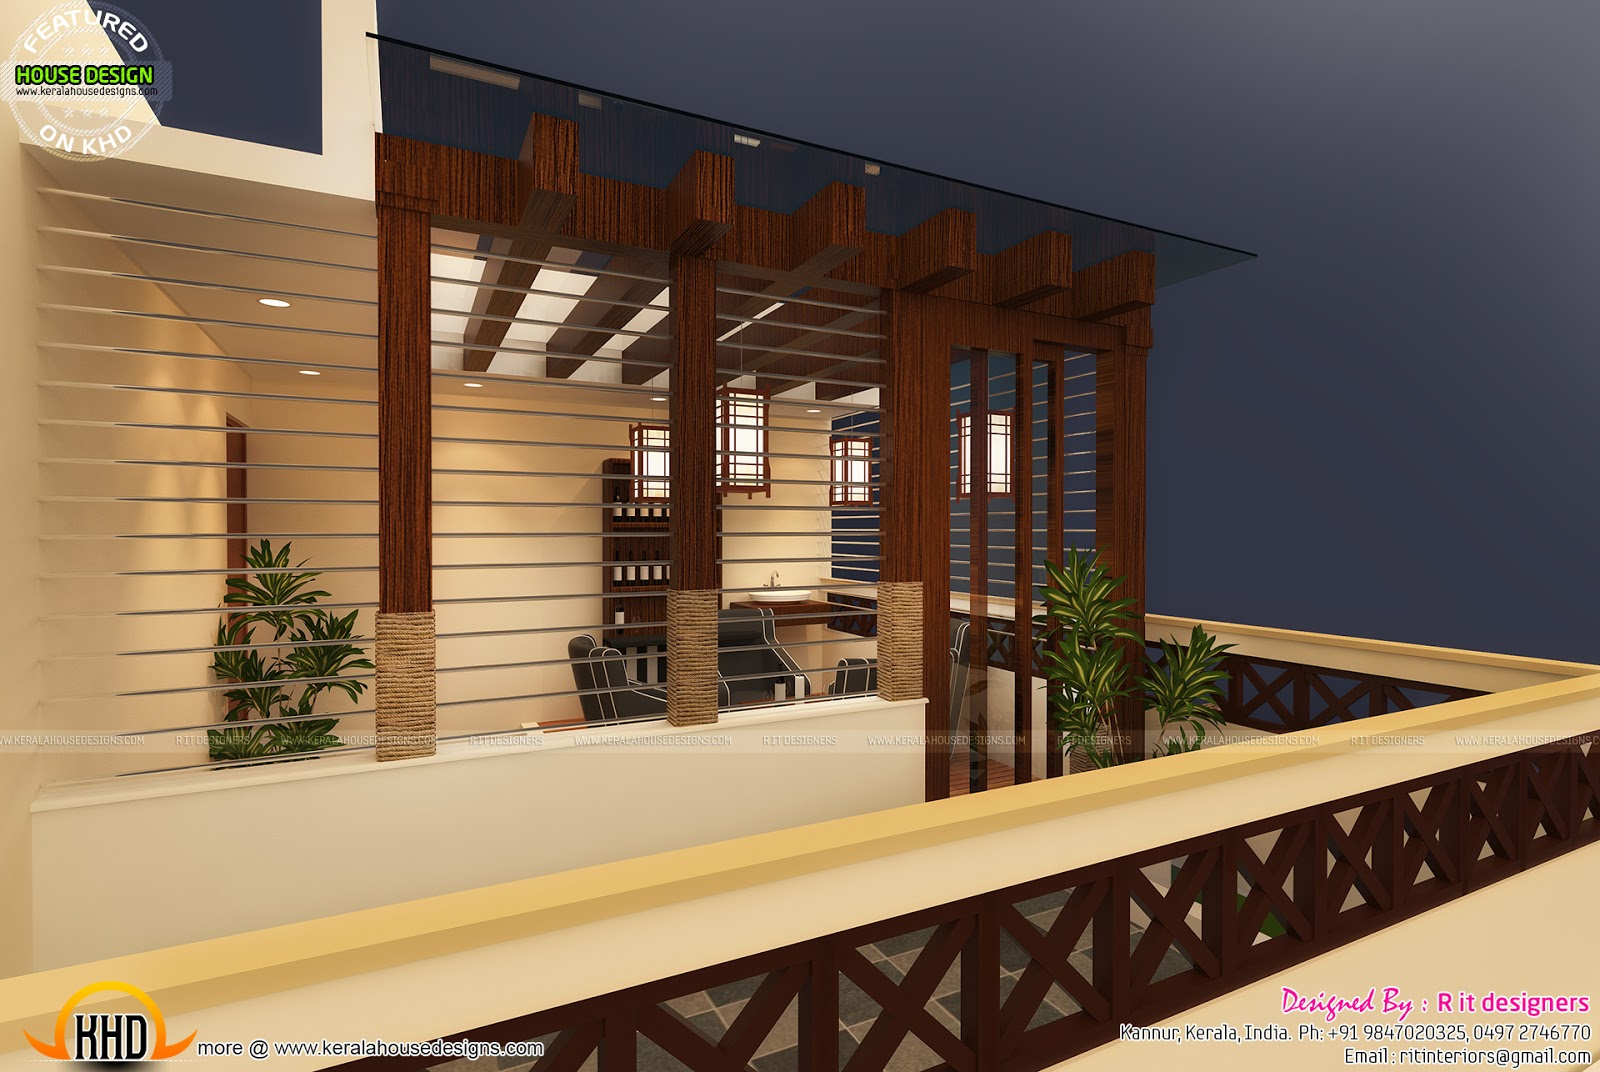 Terrace gazebo designs in india kerala home design and for Indian terrace garden designs